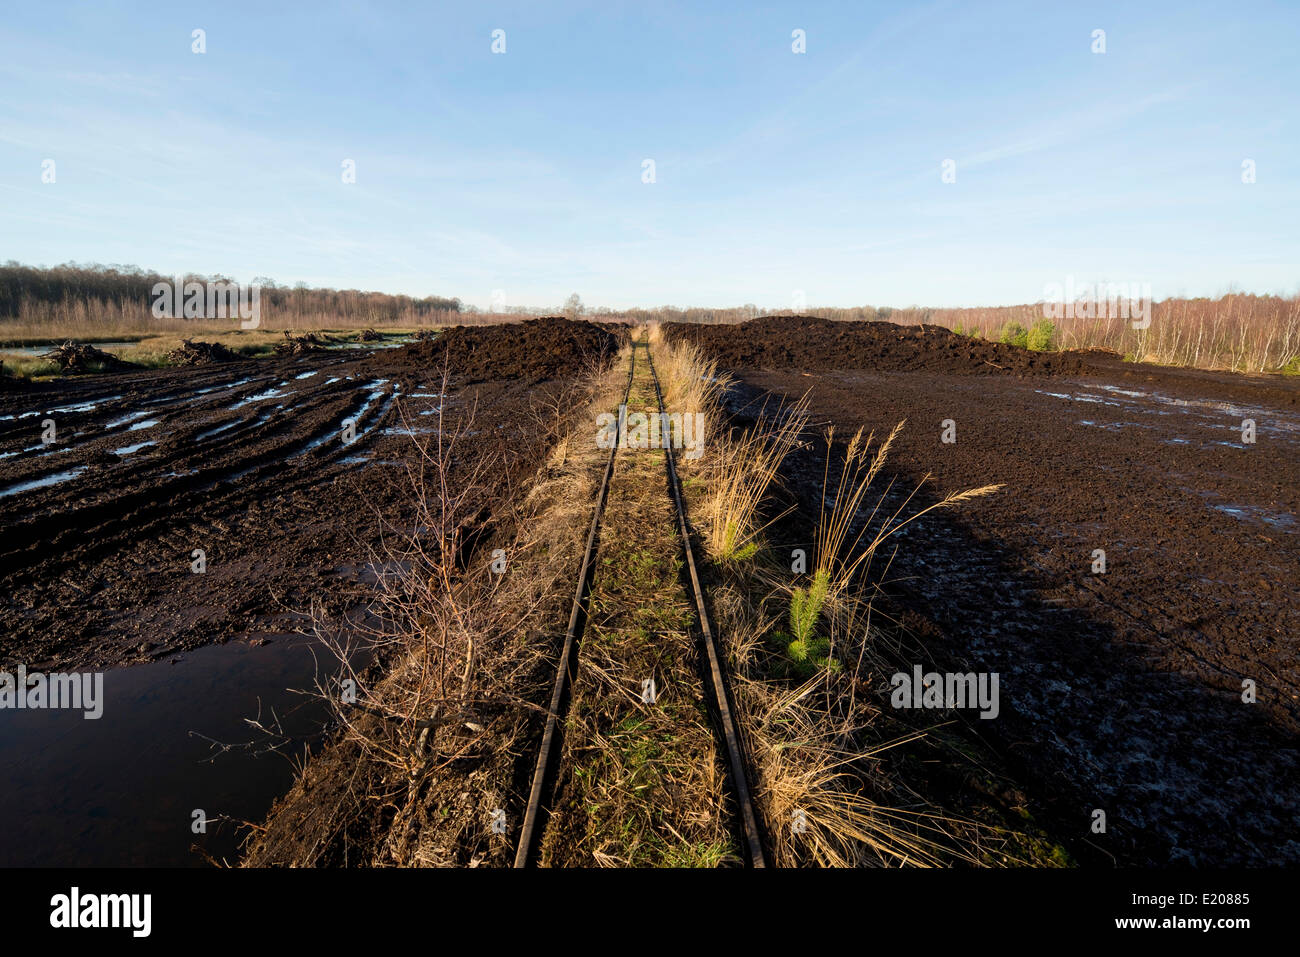 Peat cutting area and rail tracks to transport peat turves, Großes Moor Nature Reserve, near Gifhorn, Lower - Stock Image